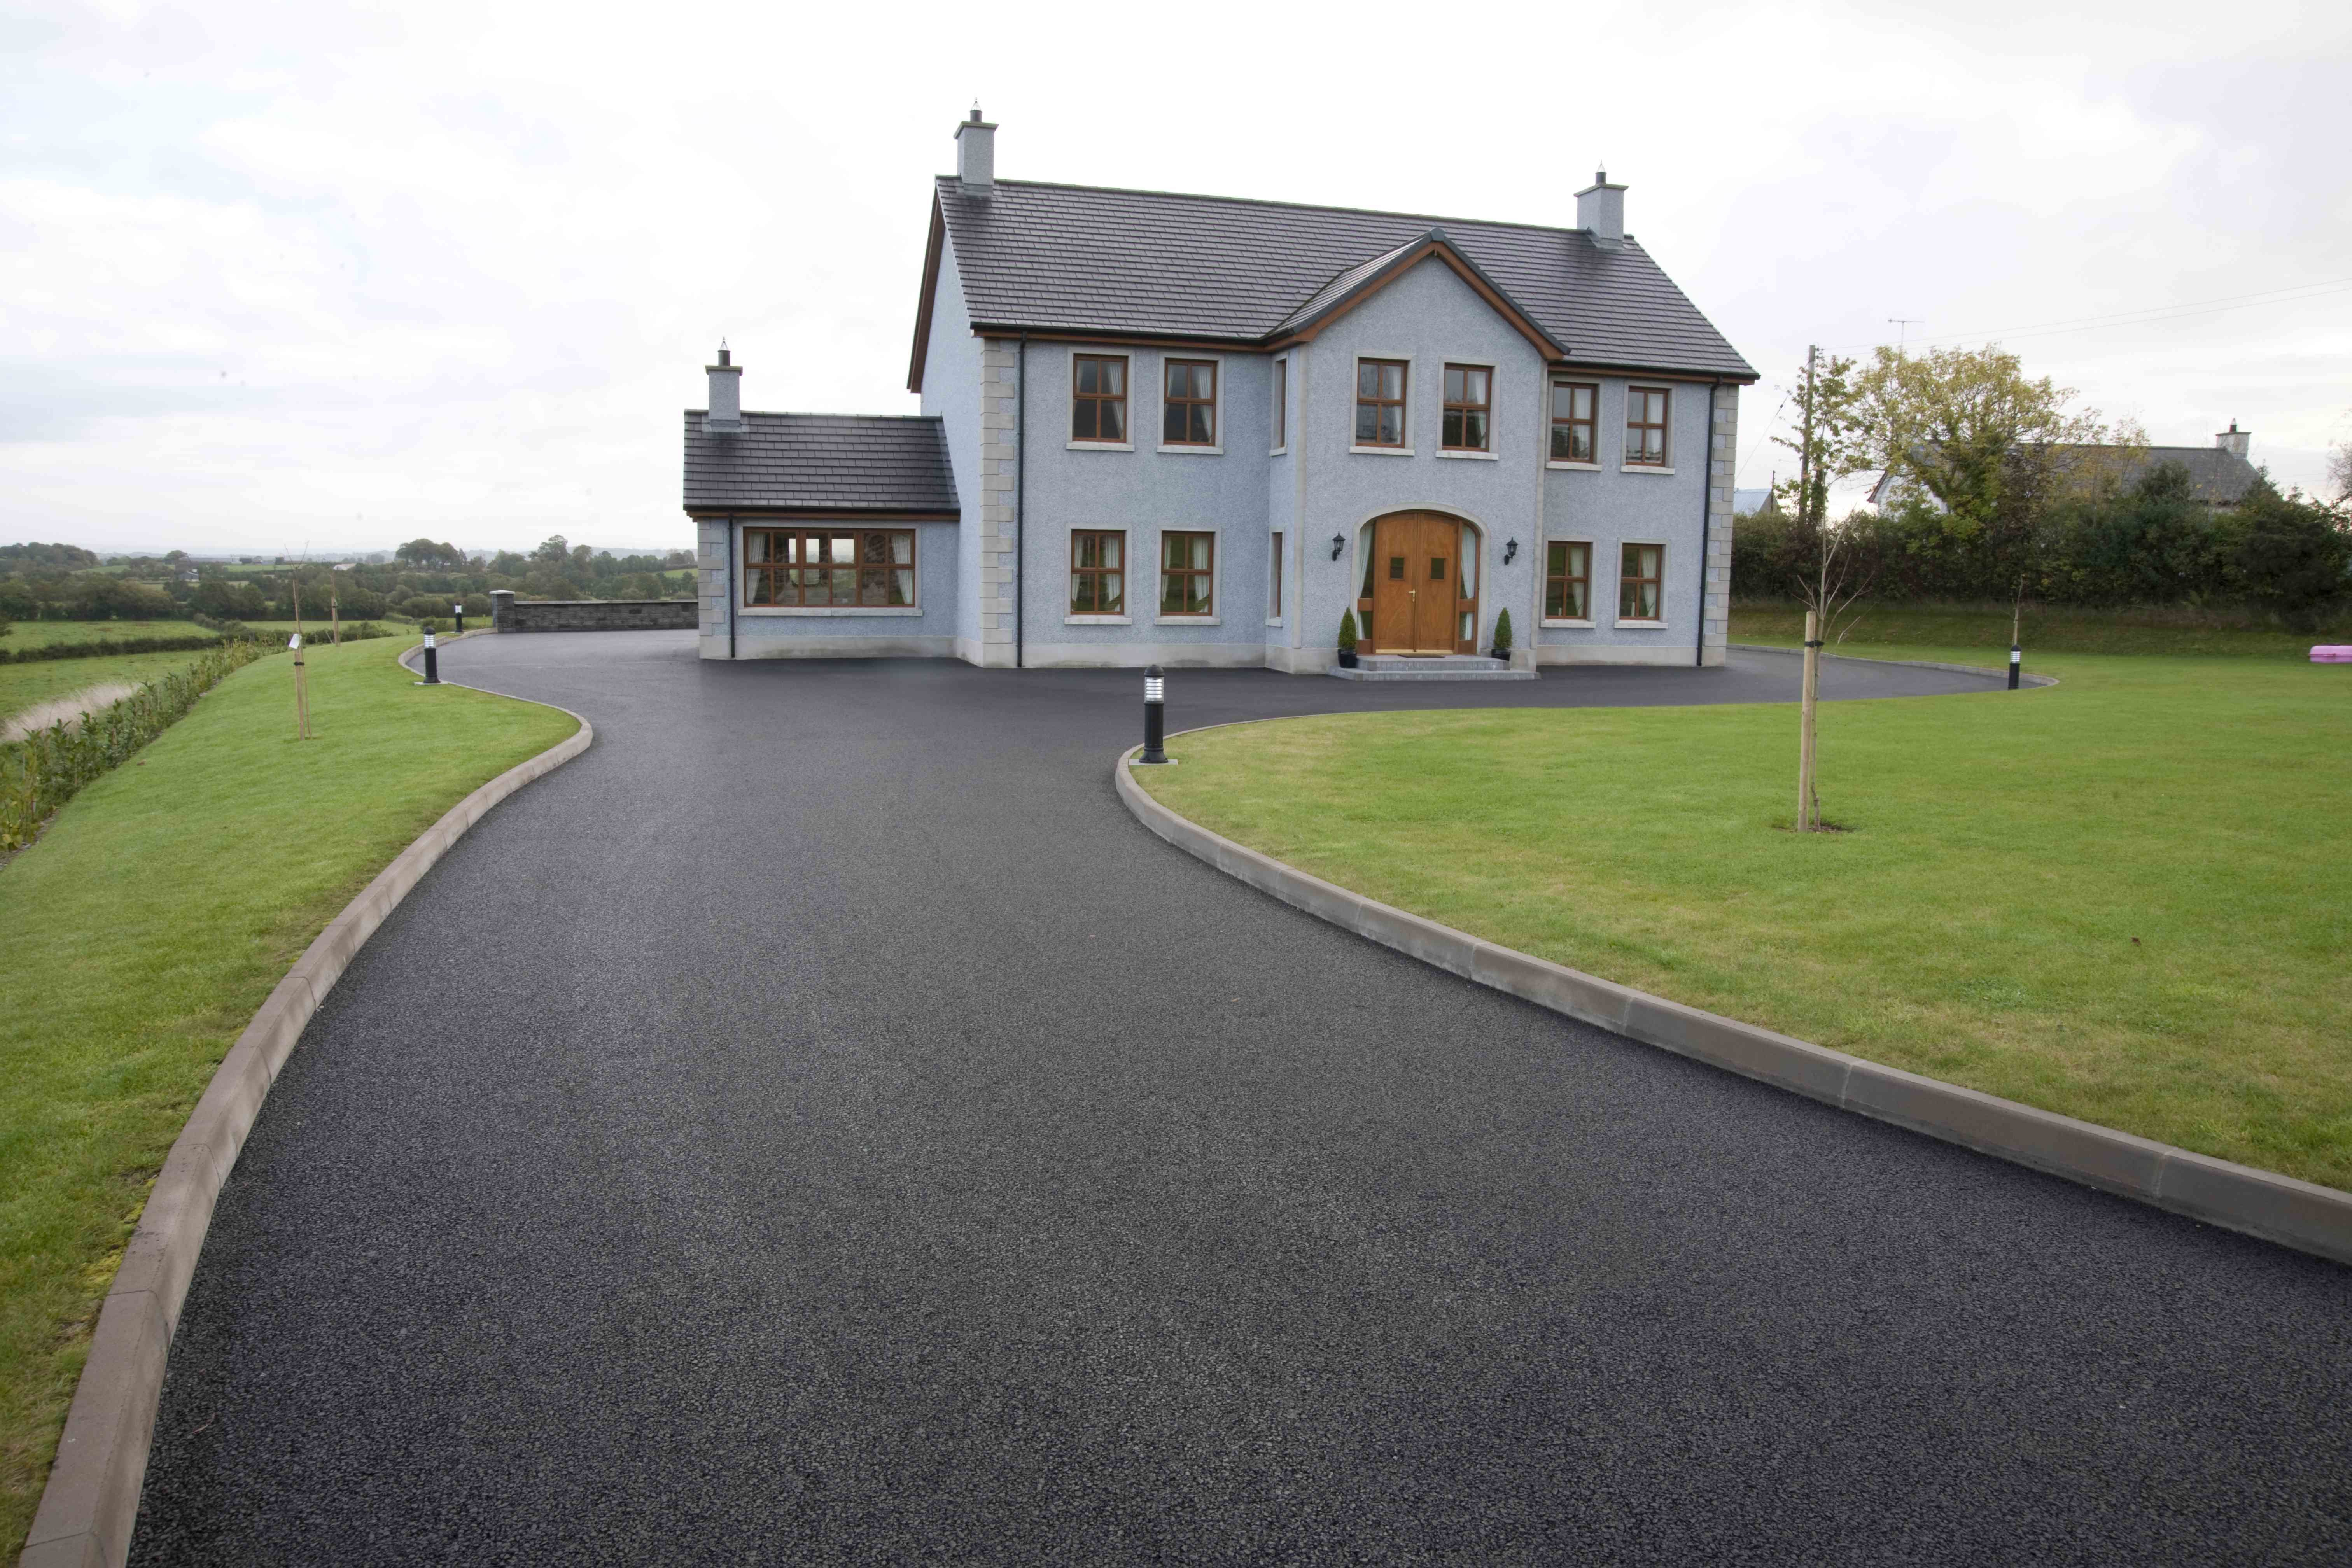 Private house with a new driveway surfaced using bitmac (tarmac ...